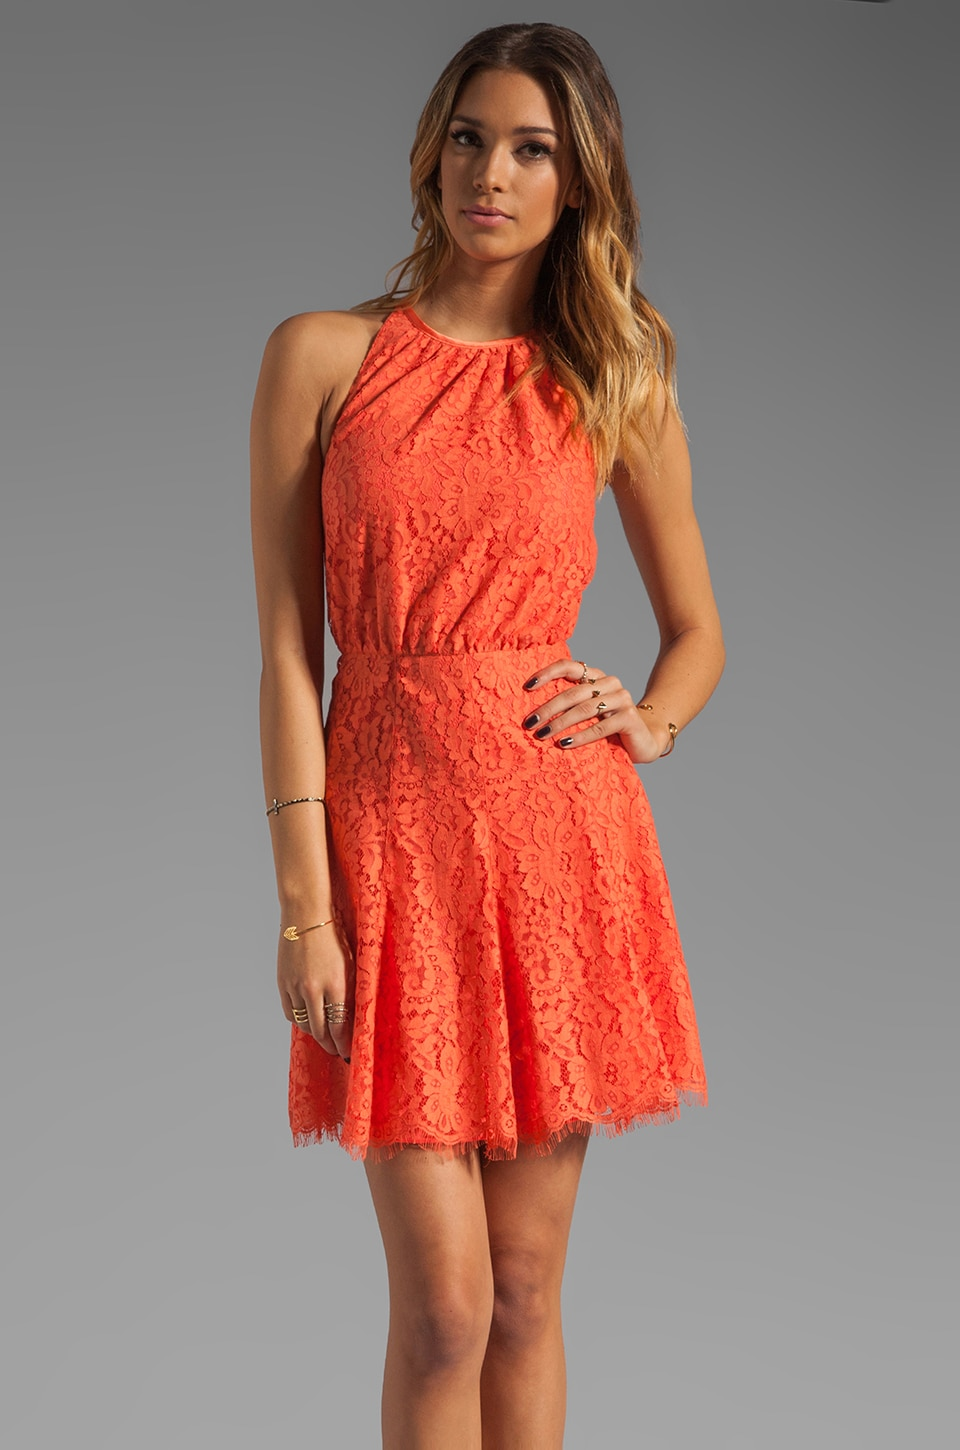 Juicy Couture Scallop Lace Dress in Sweet Clementine